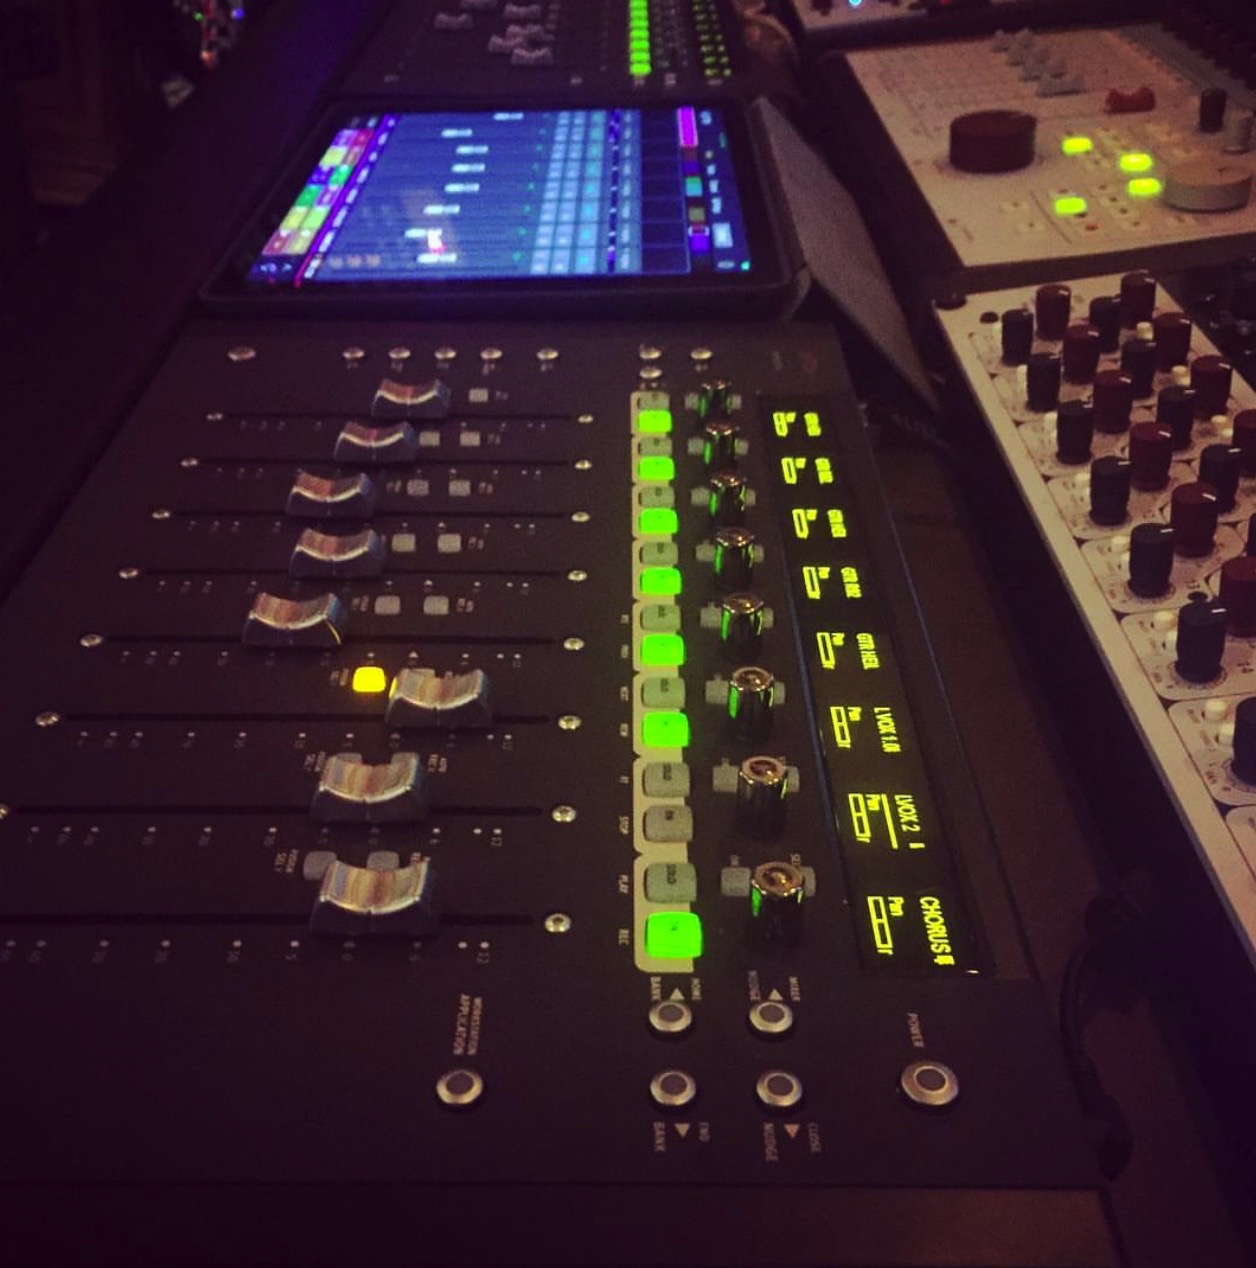 Recorders & Mixers - Recorders & MixersProTools HD Native — Version 12Mac Pro, 3.5 GHz Xeon 6-Core, 32 GB RAMApogee Symphony (2) — 32 in/48 outAntelope Pure2 Mastering ConverterStuder A800 MKIII 2